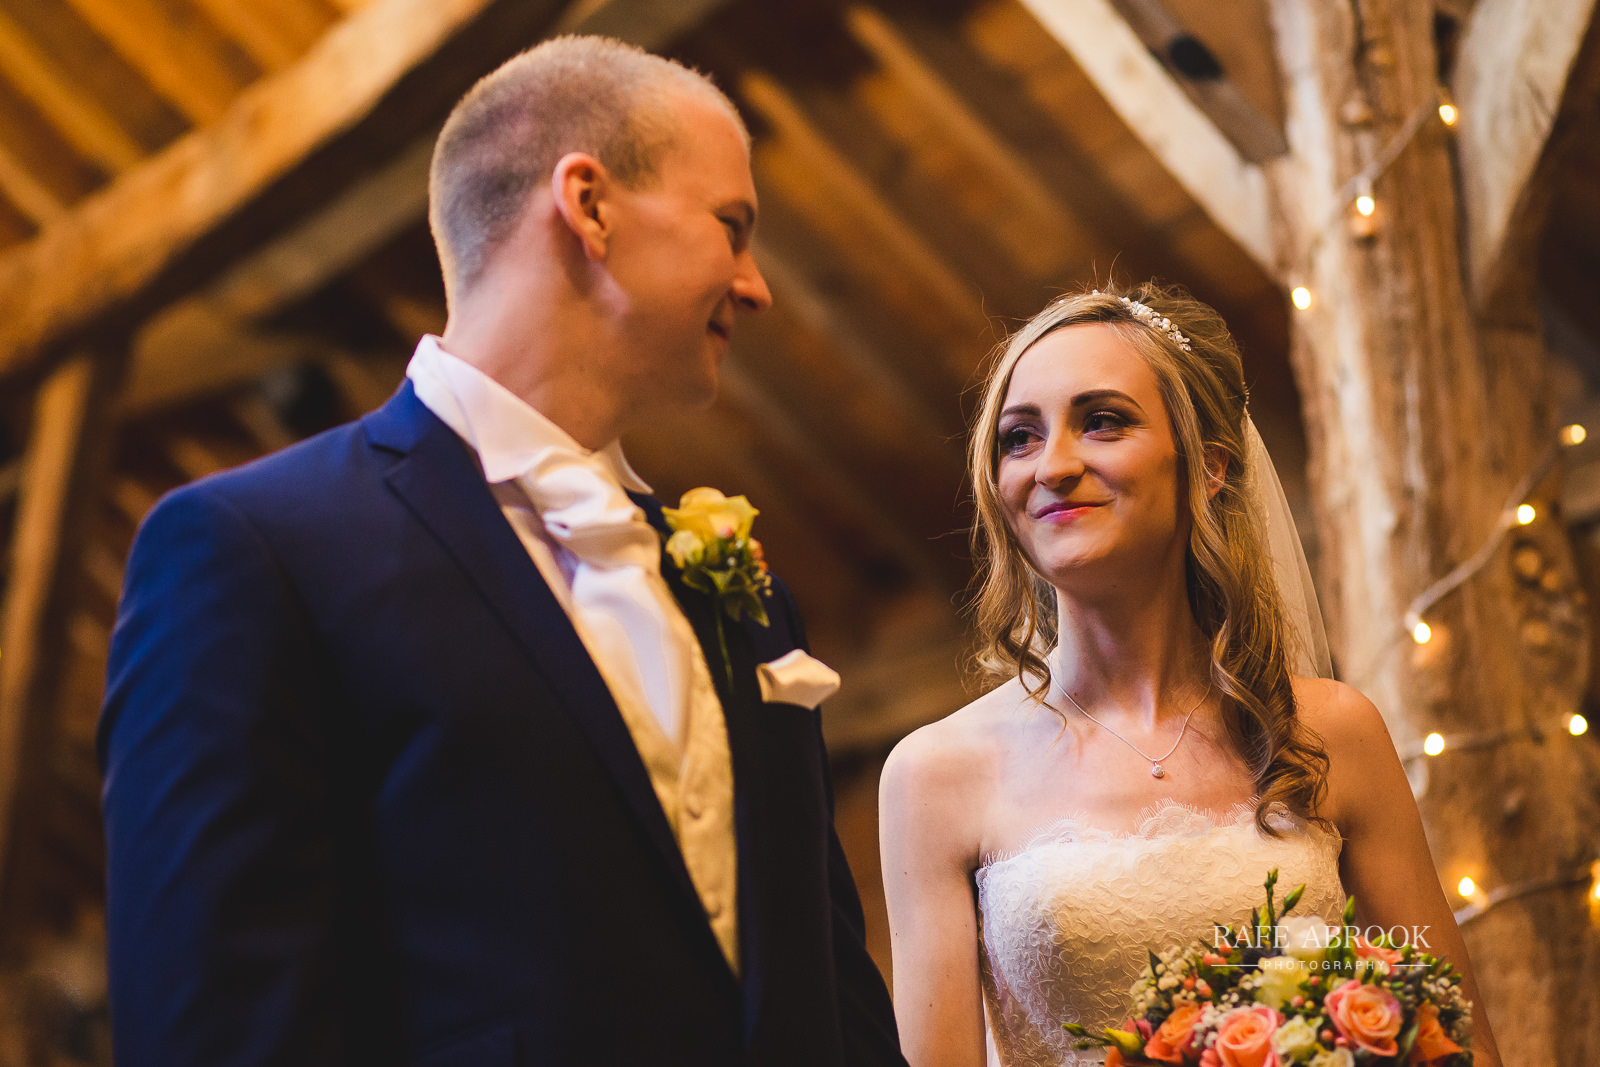 bassmead manor barns wedding st neots cambridgeshire hertfordshire wedding photographer rafe abrook-1363.jpg